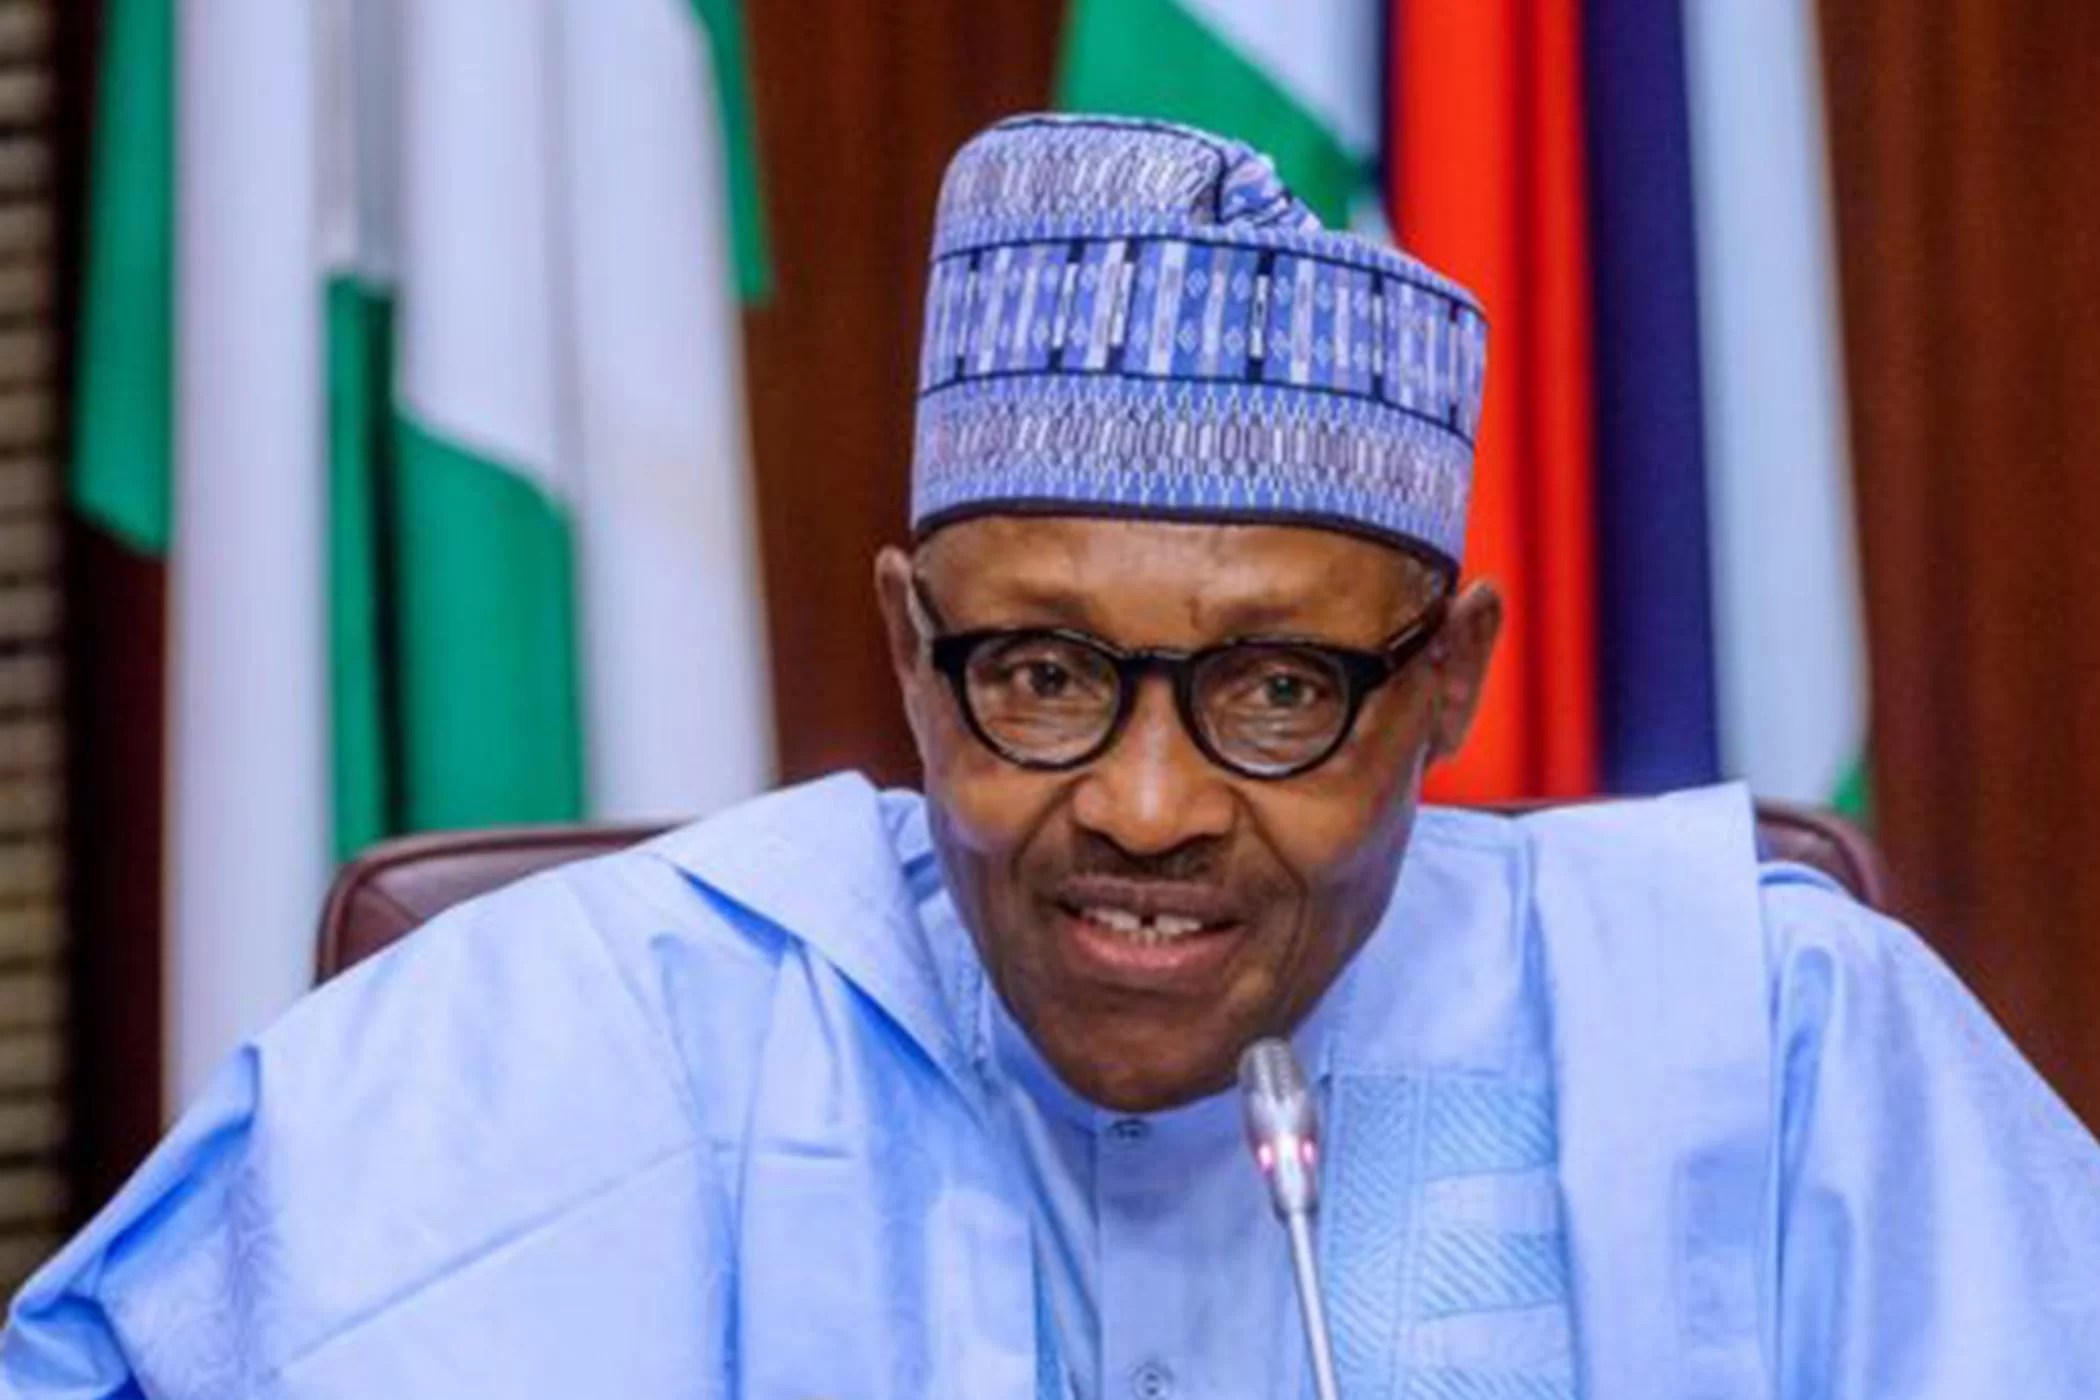 The Chairman, Senate Committee On Finance, Sen.solomon Adeola, (apc, Lagos West) Has Commended President Mohammadu Buhari For The Special Grant Of N10 Billion To Lagos State Government In The Fight Against Covid 19. Adeola In A Statement On Friday By His Media Adviser, Chief Kayode Oduna